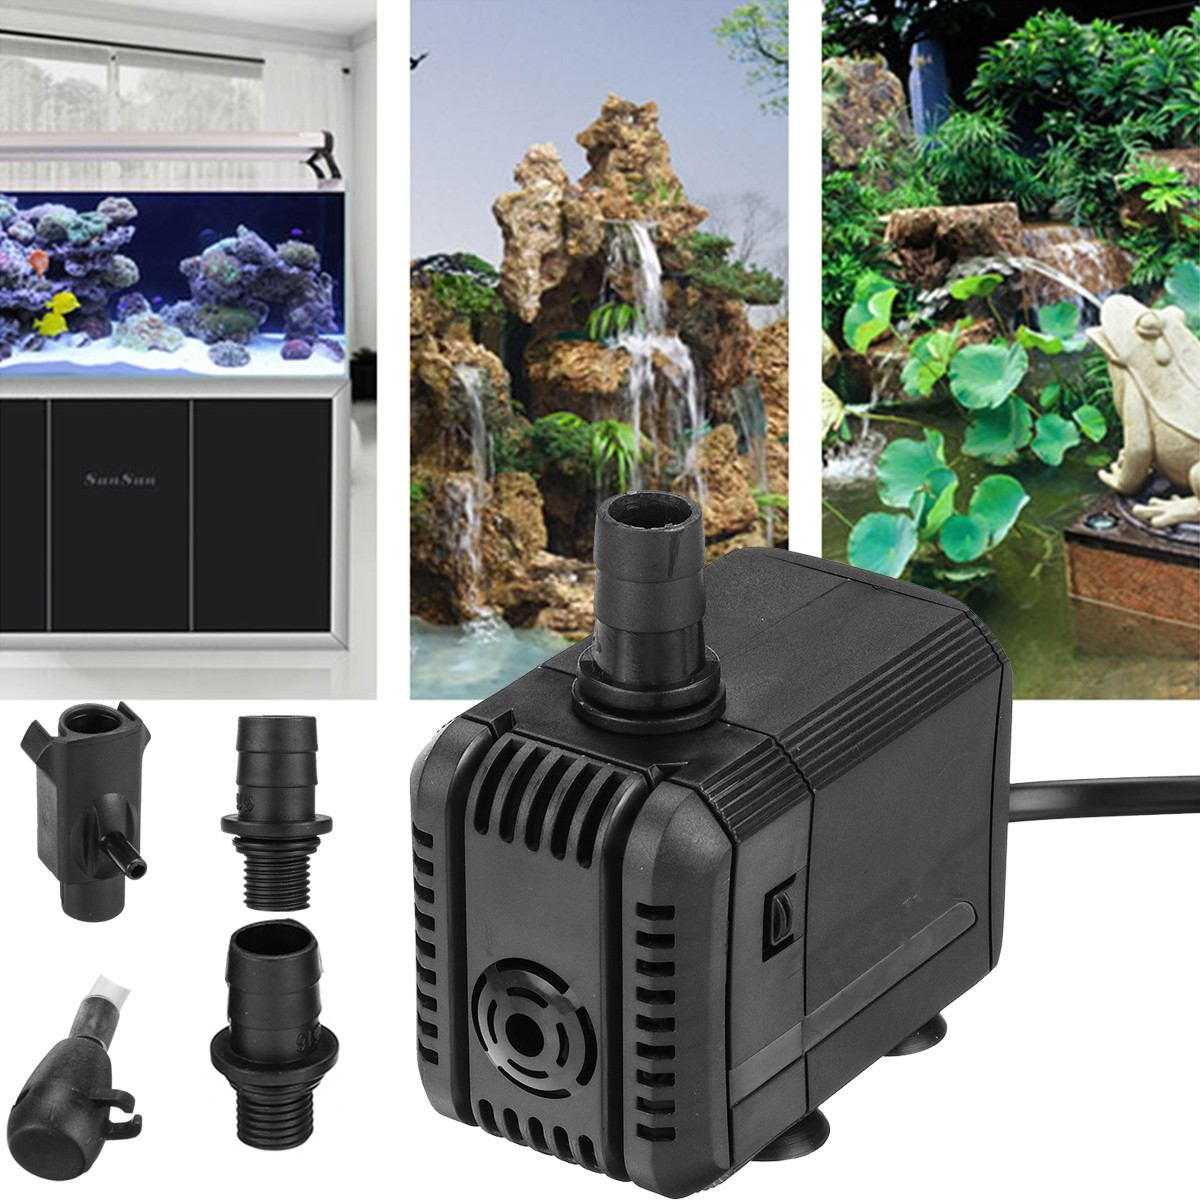 <font><b>110V</b></font> Portable Aquarium <font><b>Water</b></font> <font><b>Pump</b></font> ABS Low Power Mini <font><b>Pumps</b></font> Waterproof Submersible Fish Tank Pond Pool Fountains <font><b>Water</b></font> <font><b>Pump</b></font> image